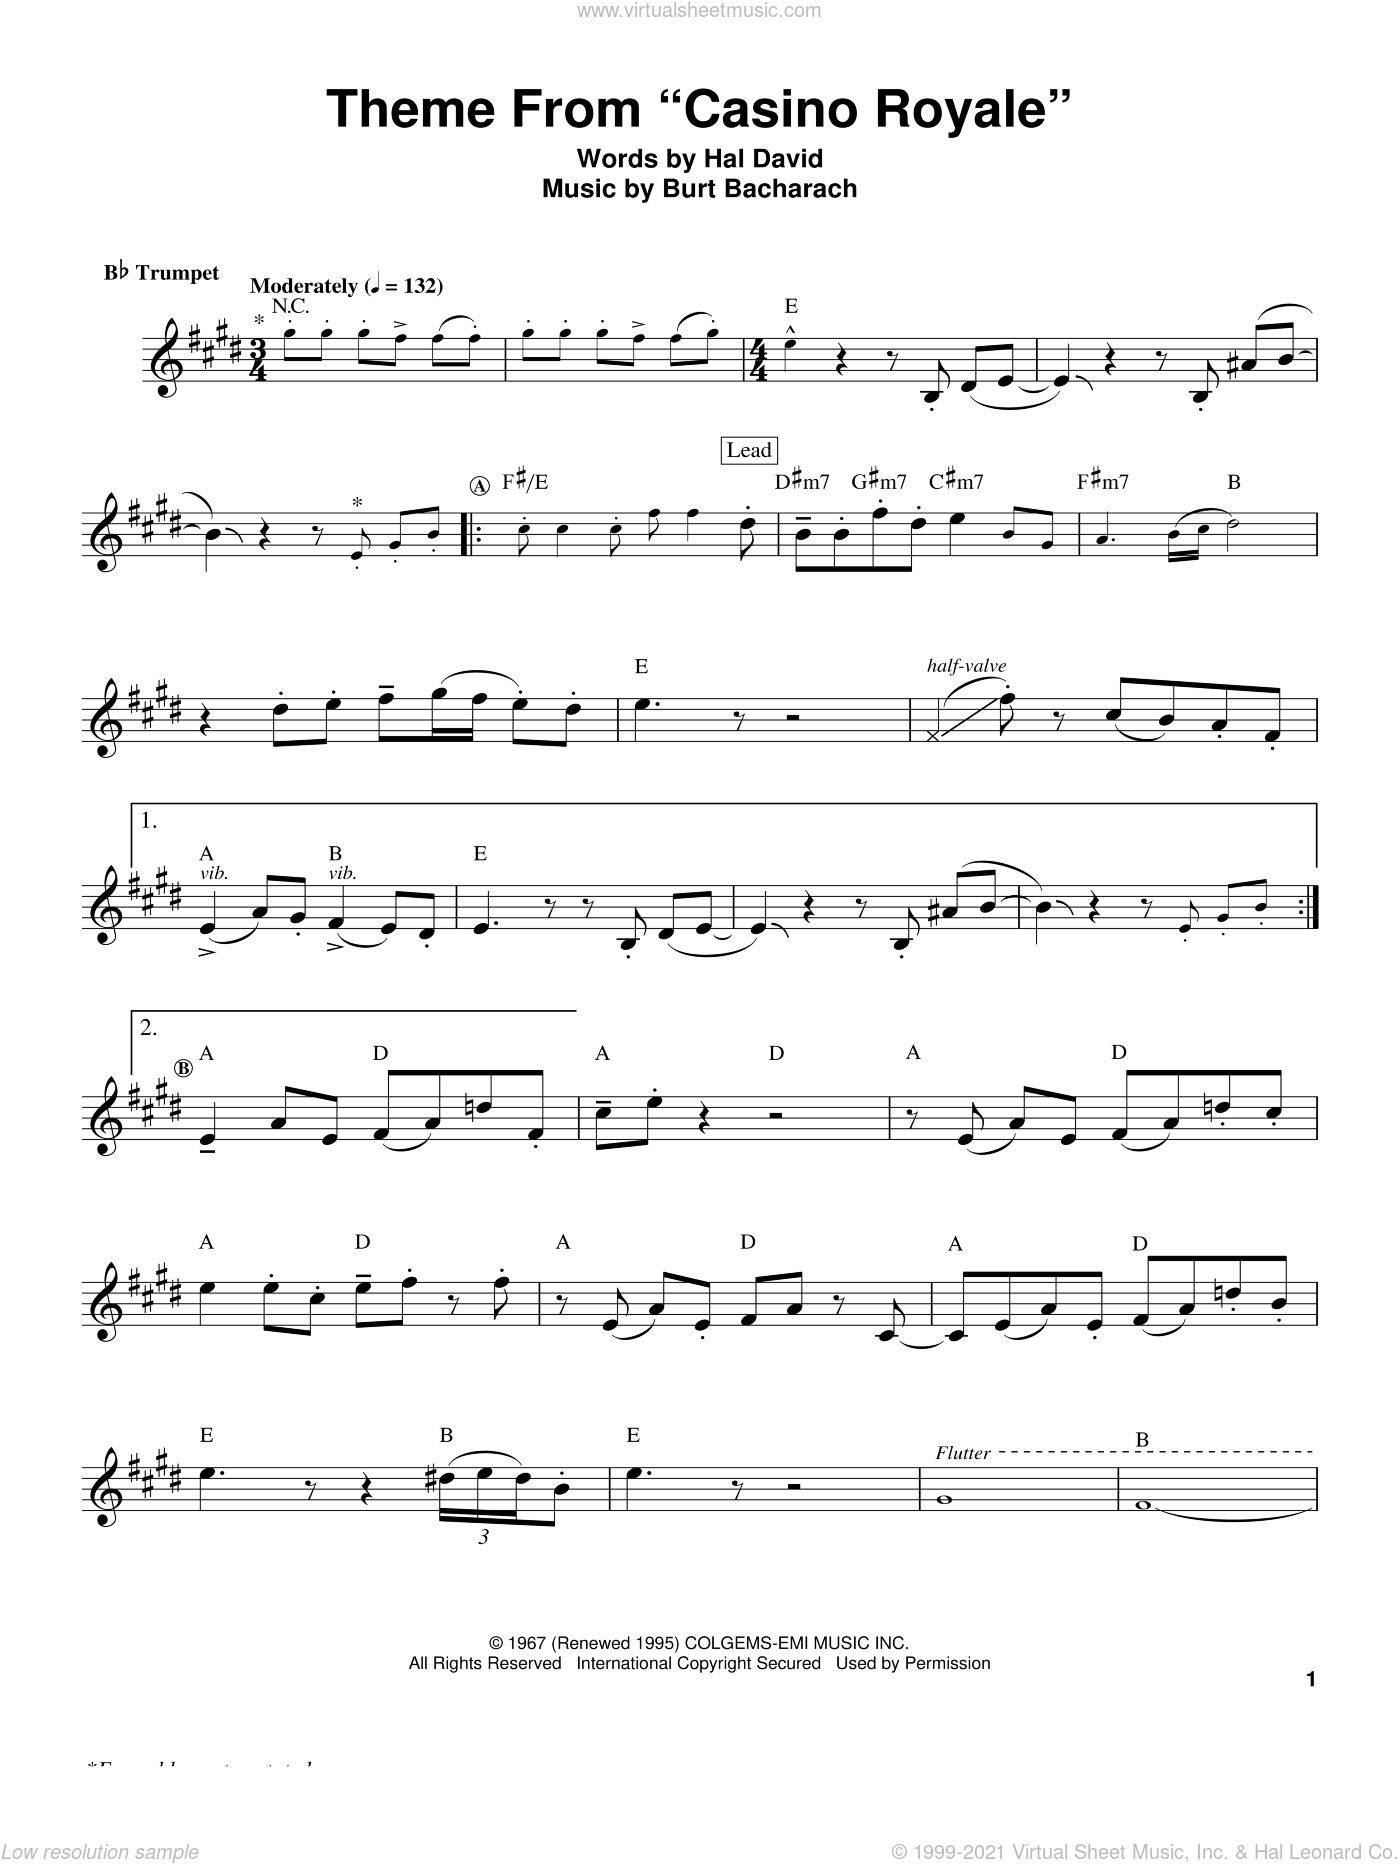 Theme From 'Casino Royale' sheet music for trumpet solo (transcription) by Herb Alpert, Burt Bacharach and Hal David, intermediate trumpet (transcription)